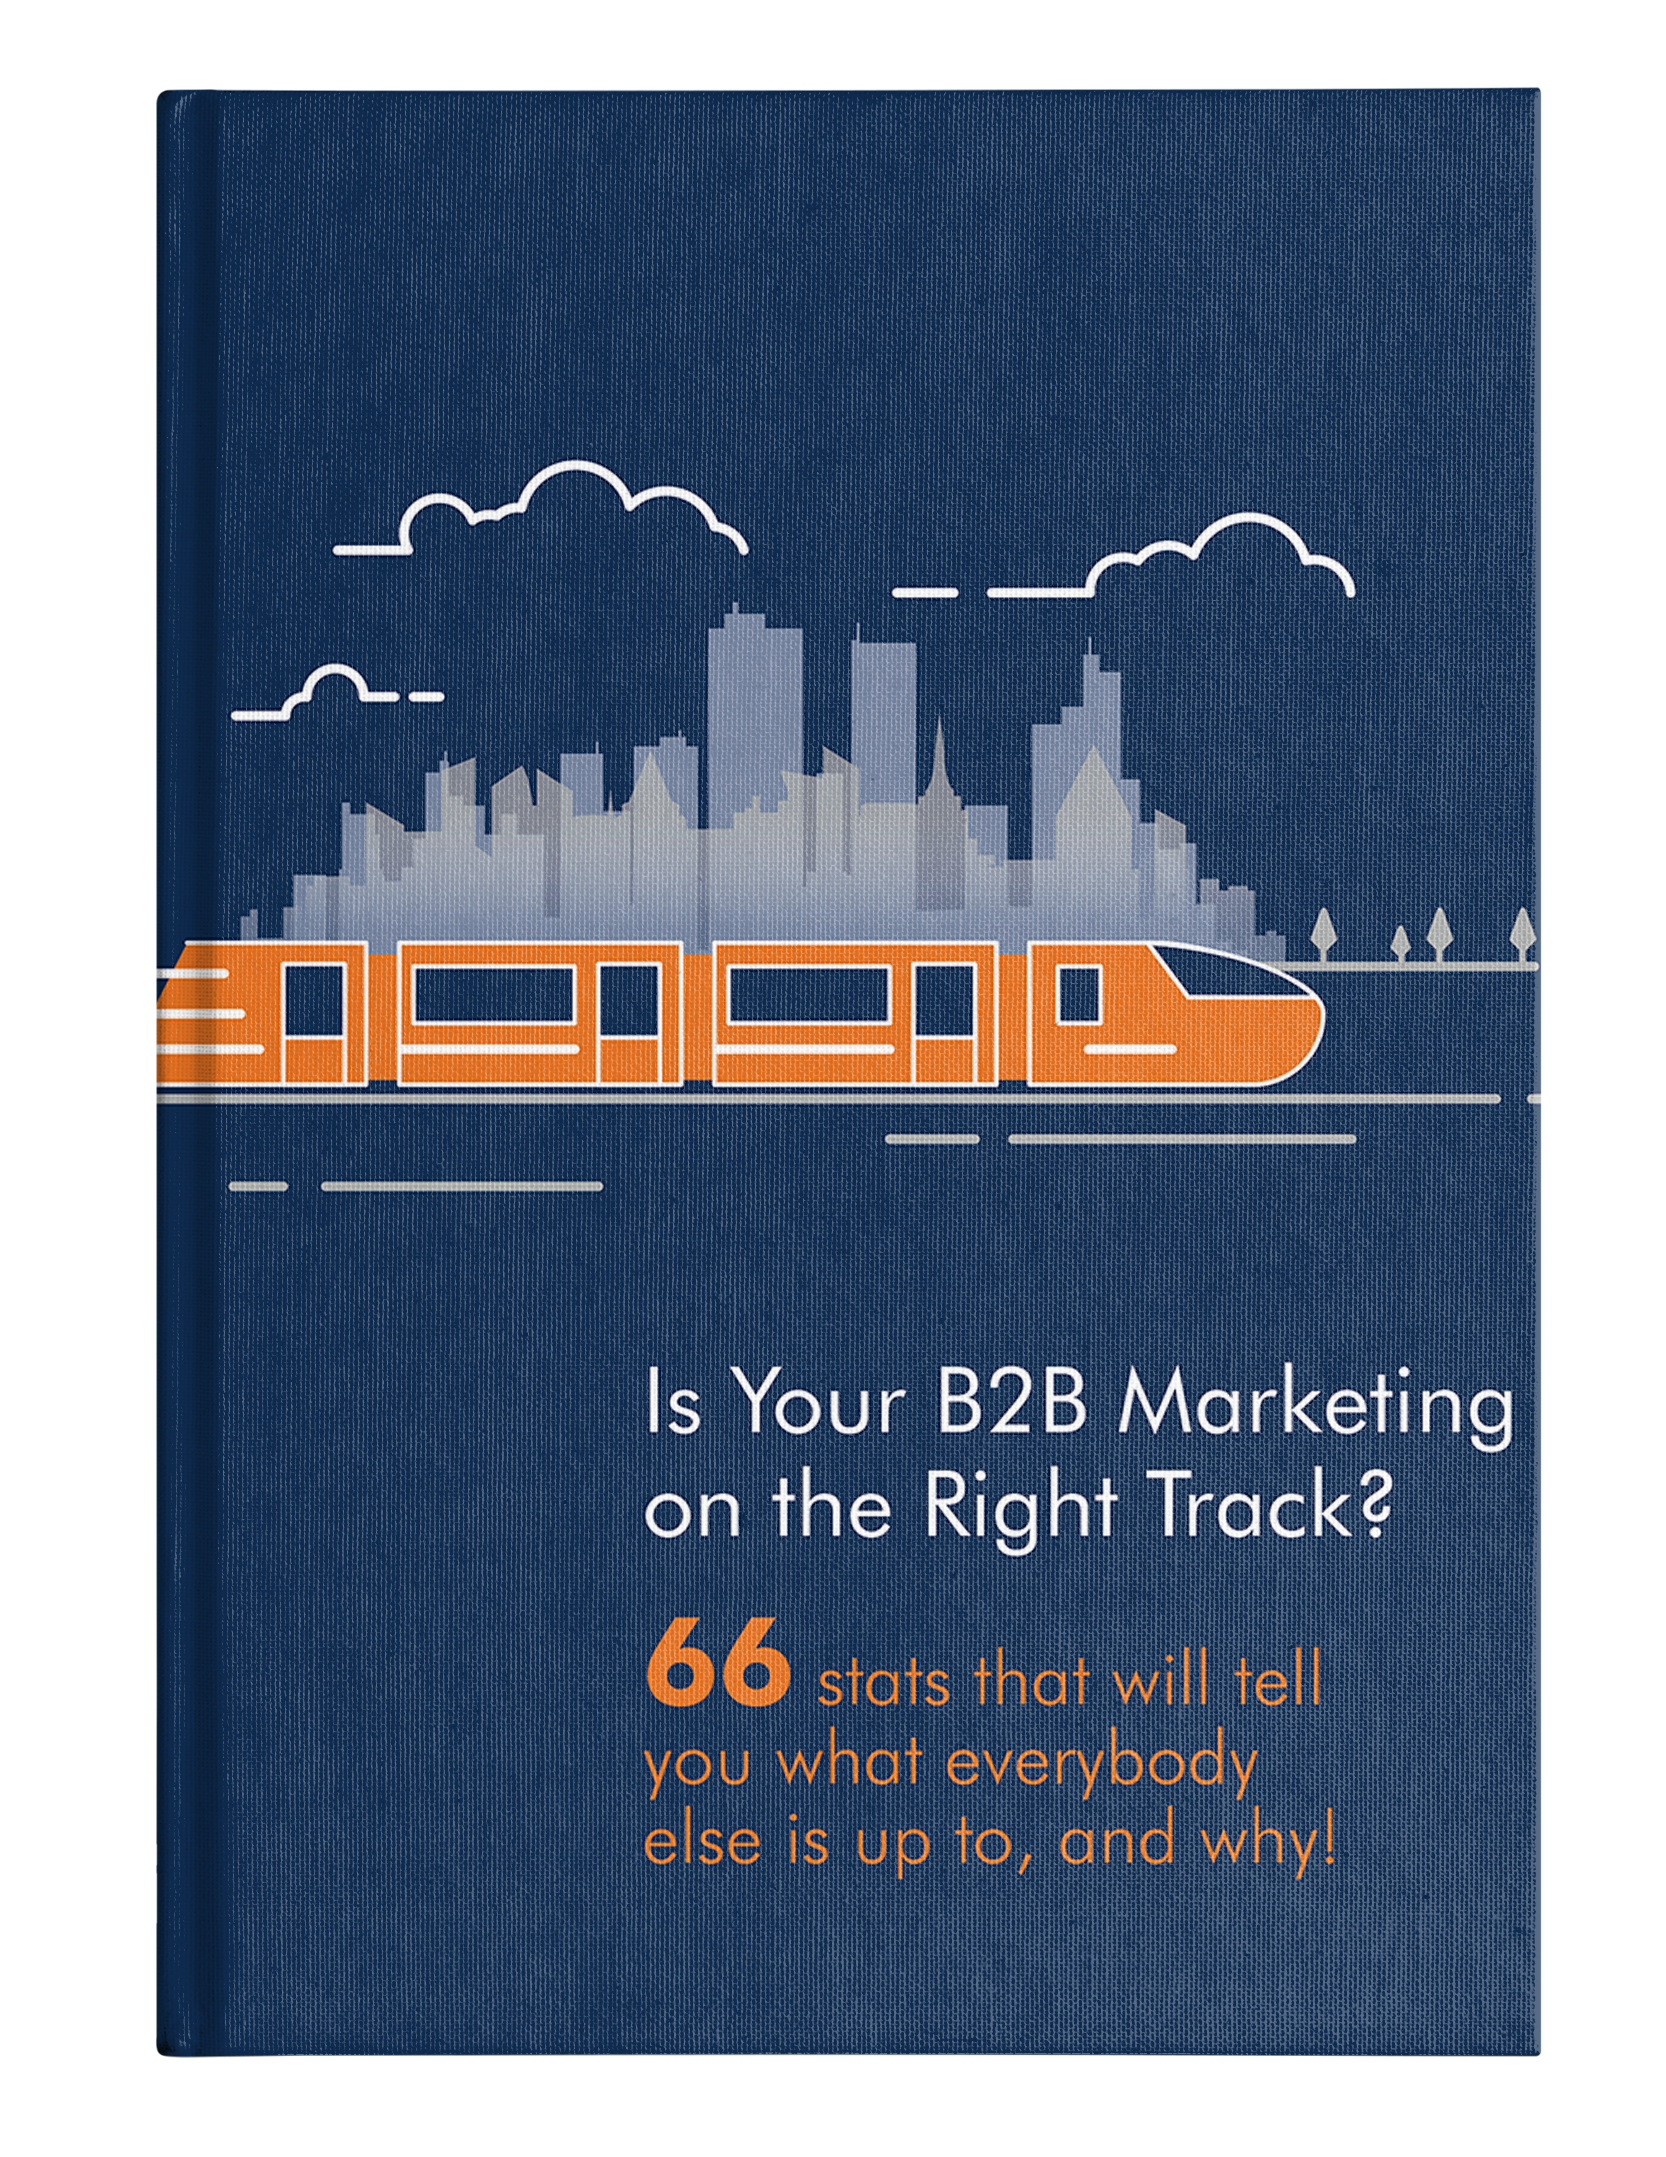 66 Stats for the 15 best Marketing Tactics